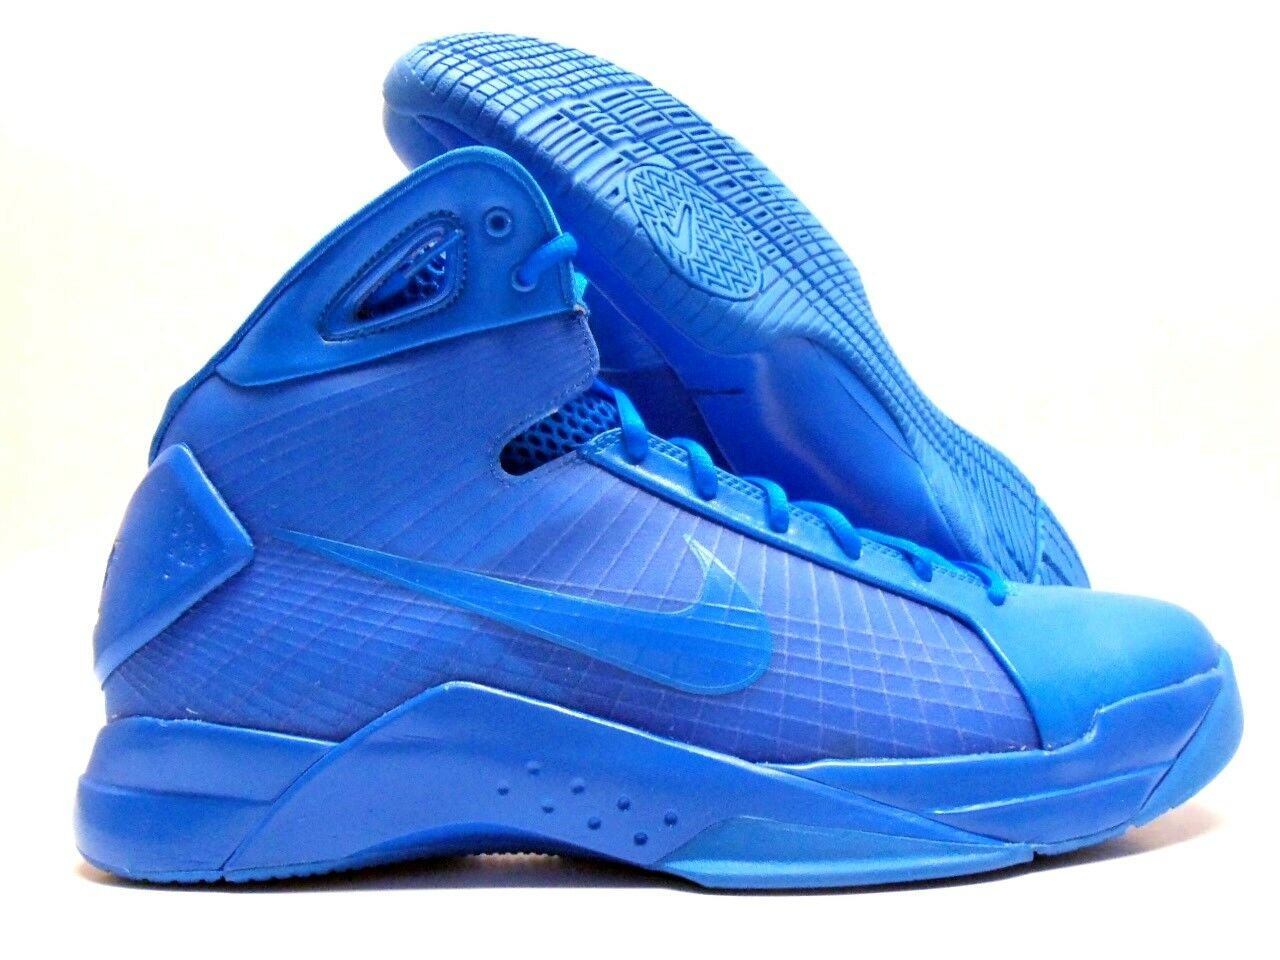 NIKE HYPERDUNK '08 BASKETBALL PHOTO BLUE SIZE MEN'S 11 [820321-400]